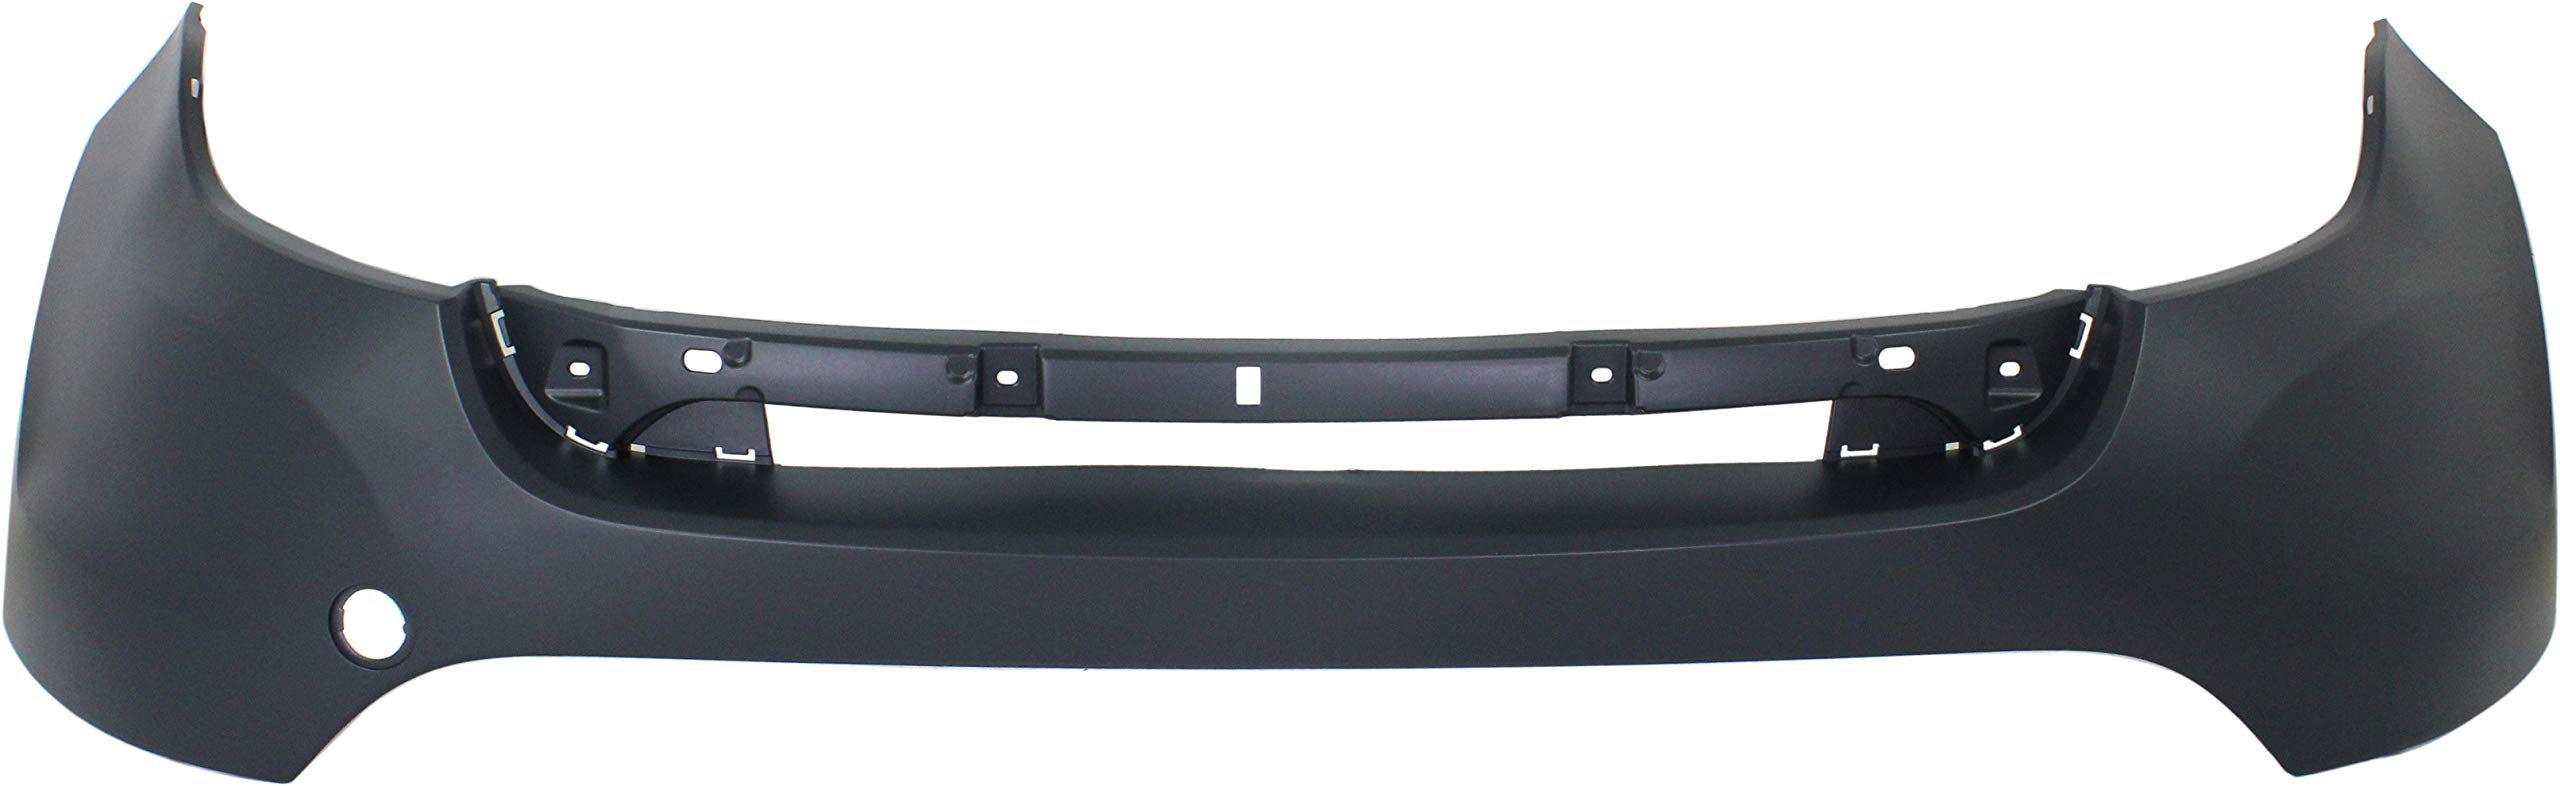 Front Bumper Cover Compatible with 2011-2015 Ford Explorer/Police Interceptor Utility 2013-2014 Upper Primed